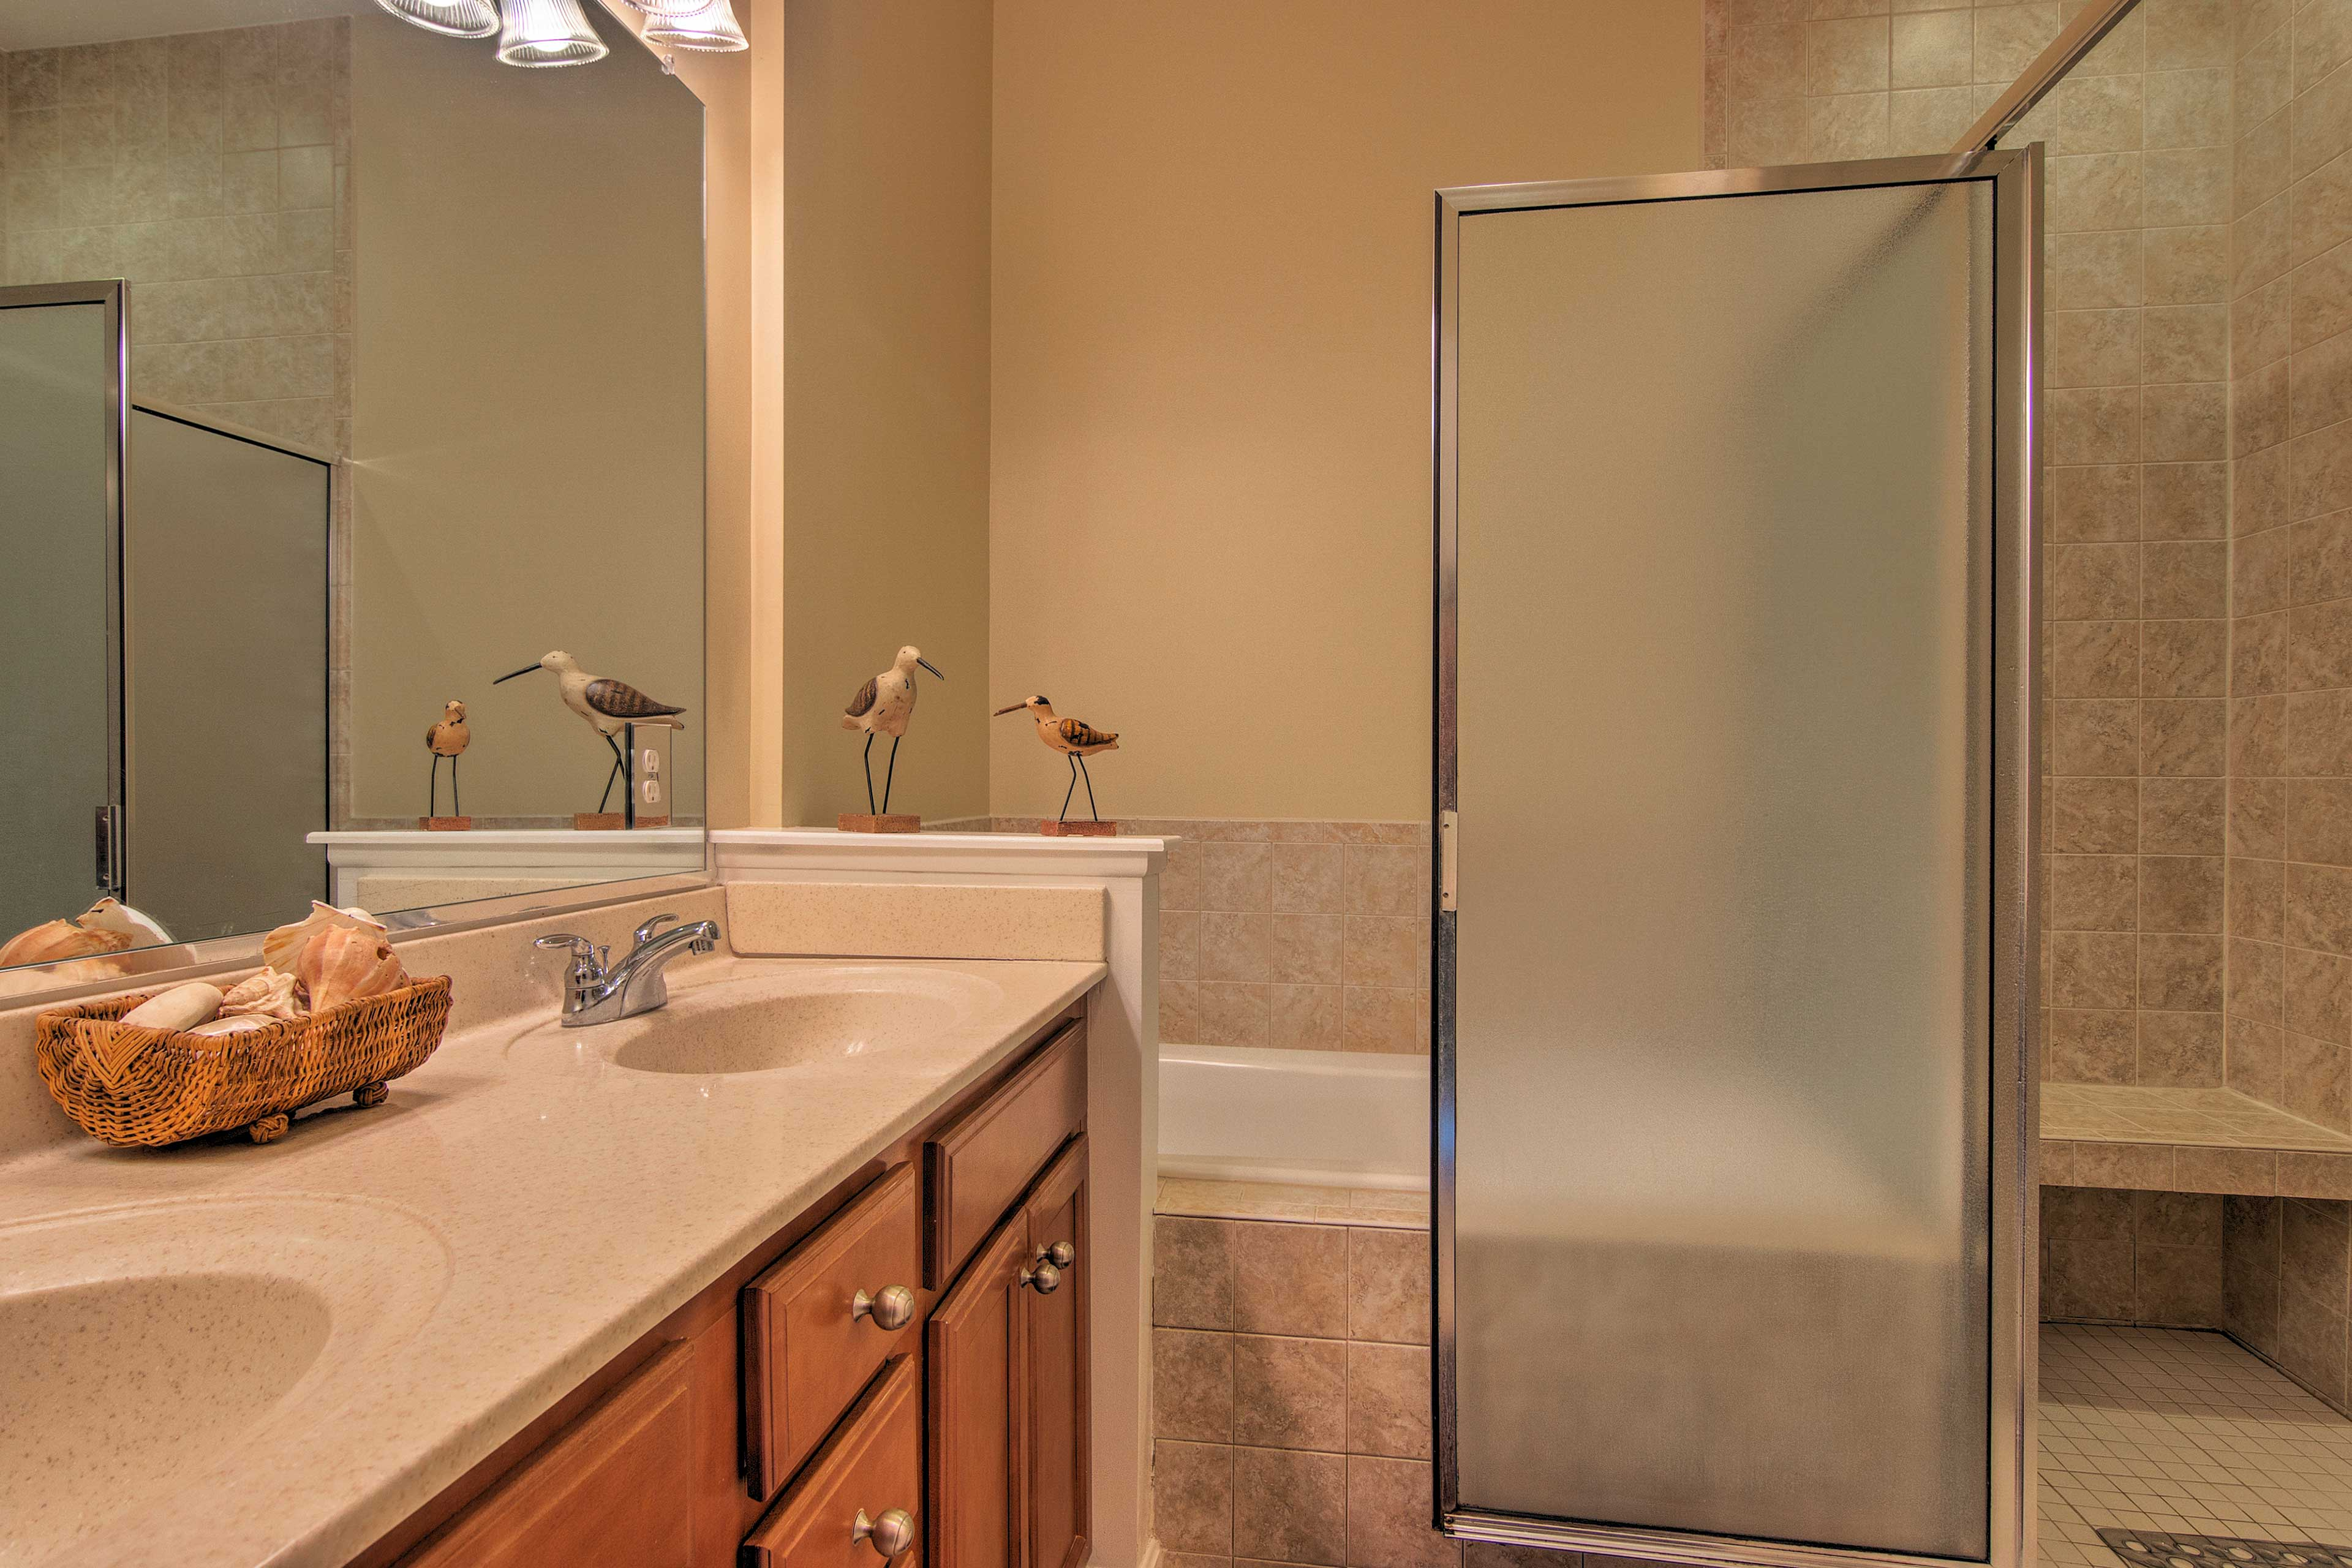 The master bathroom has a tub and a sitting shower for your enjoyment.